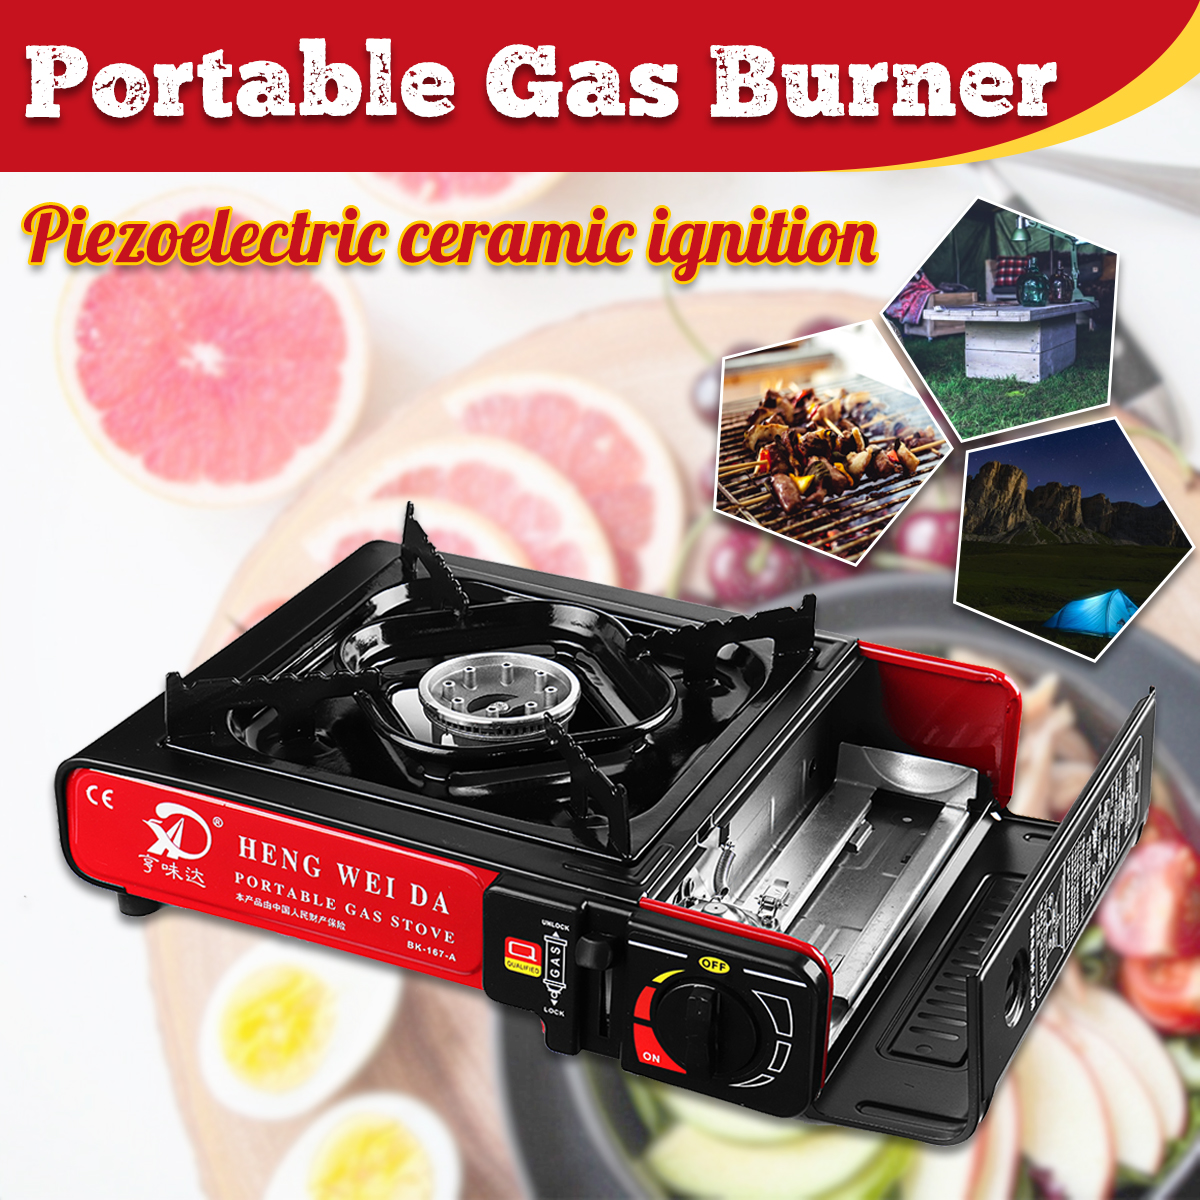 2900W Portable Camping Gas Burners Butane Cooking Stove Wind Shield Outdoor Picnic BBQ Cooker Camping Stove Gas windproof bbq portable butane cassette cooker grill outdoor griddle camping stove gas cooking outdoor picnic countertop burners